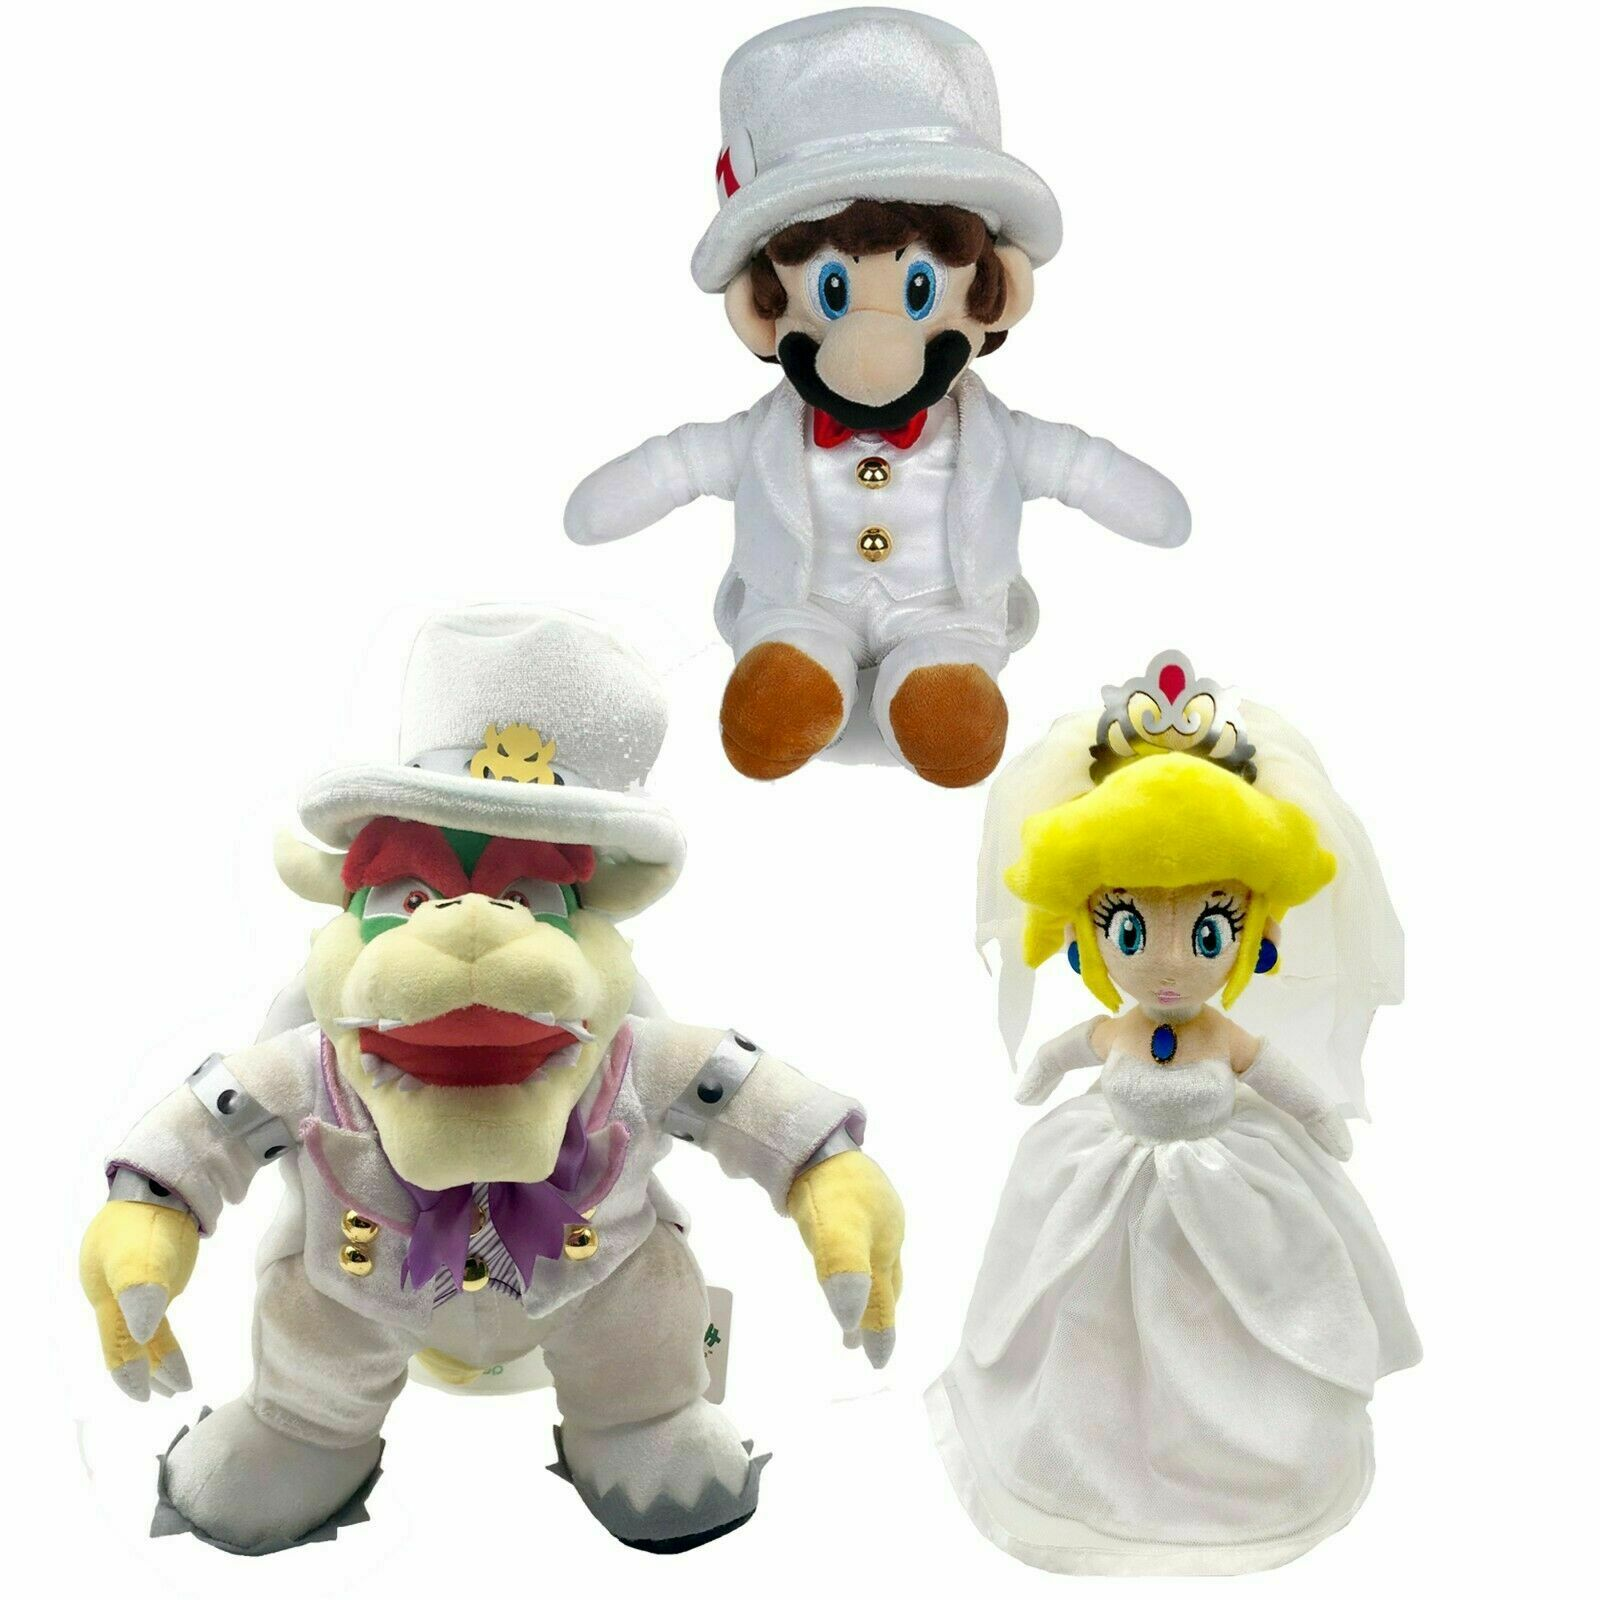 3X Super Mario Odyssey Bowser Peach Mario Wedding Dress Plush Toy Figure Doll